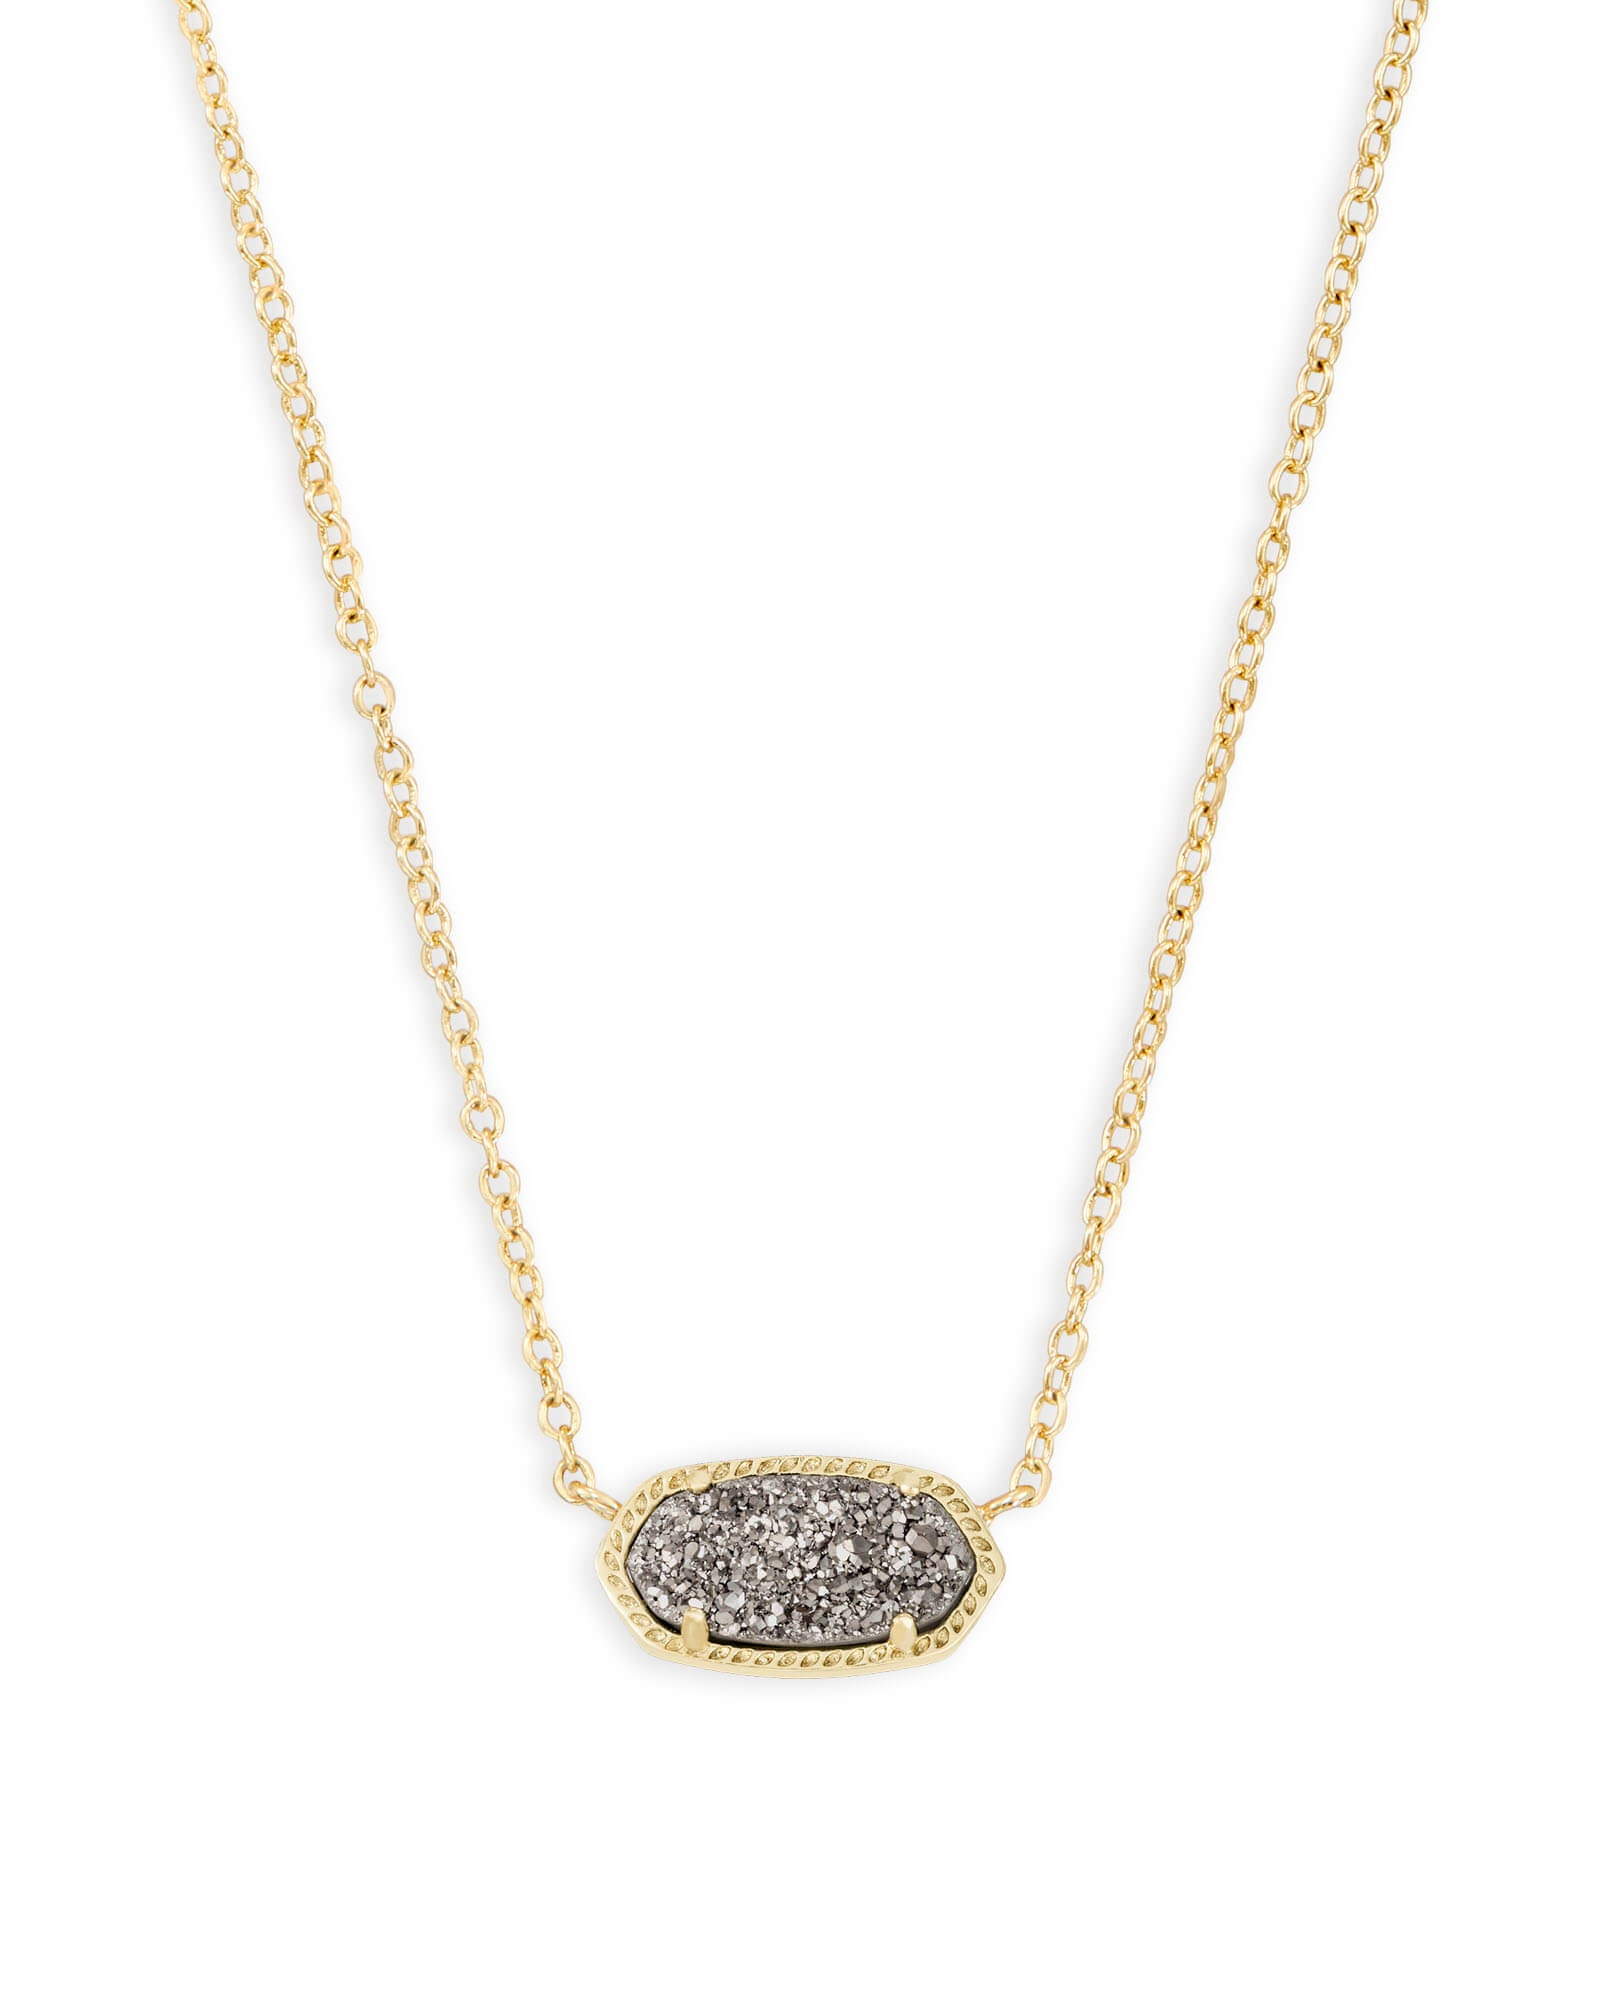 ELISA NECKLACE GOLD PLATINUM DRUSY